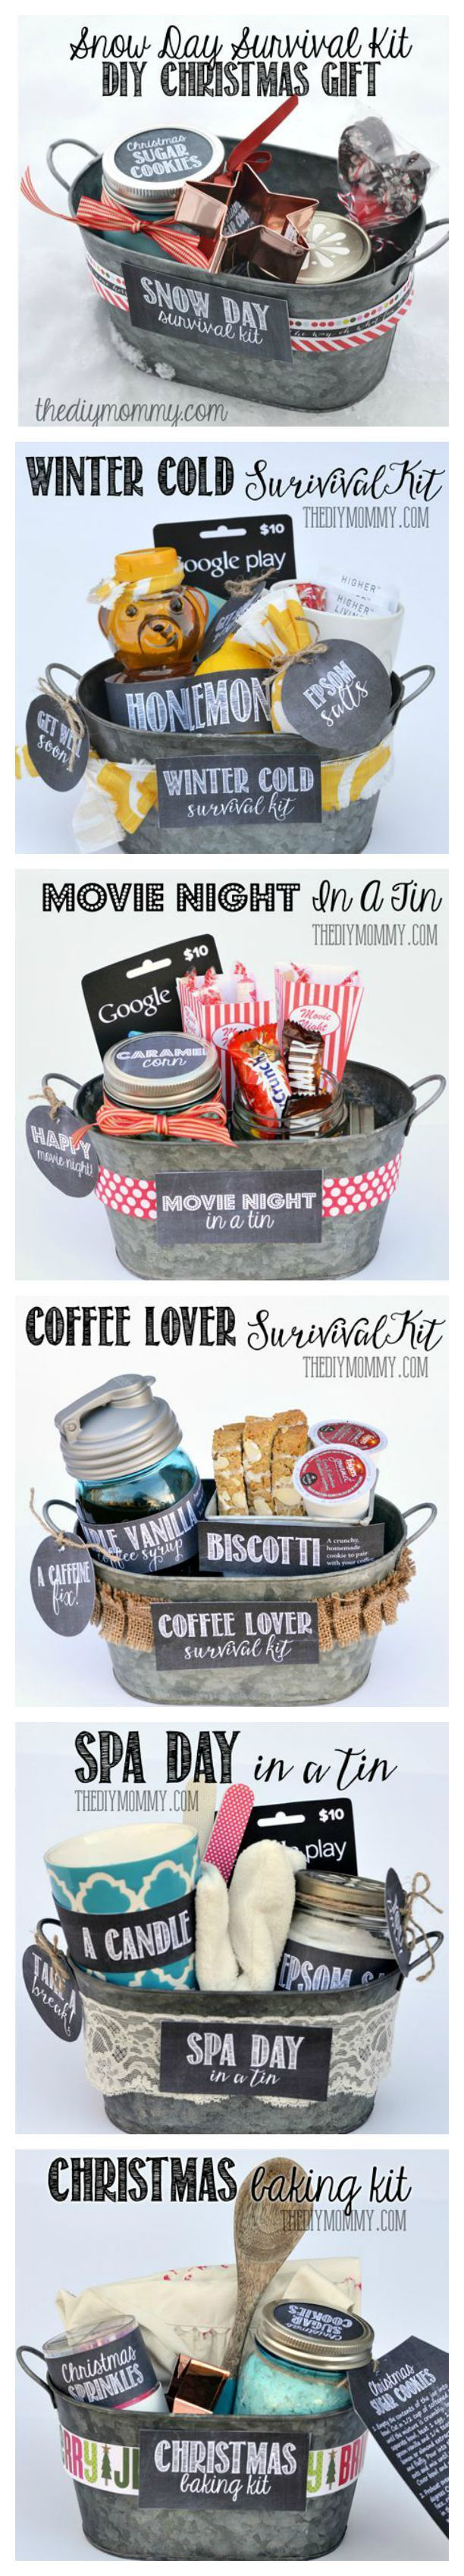 Ideas : Gifts In A Tin ~ Some wonderful ideas! All 6 gift basket ideas come with free tags and labels, and a list of suggested items... Snow Day Survival Kit, Winter Cold Survival Kit, Movie Night in a Tin, Coffee Lover Survival Kit, Spa Day in a Tin, Christmas Baking Kit